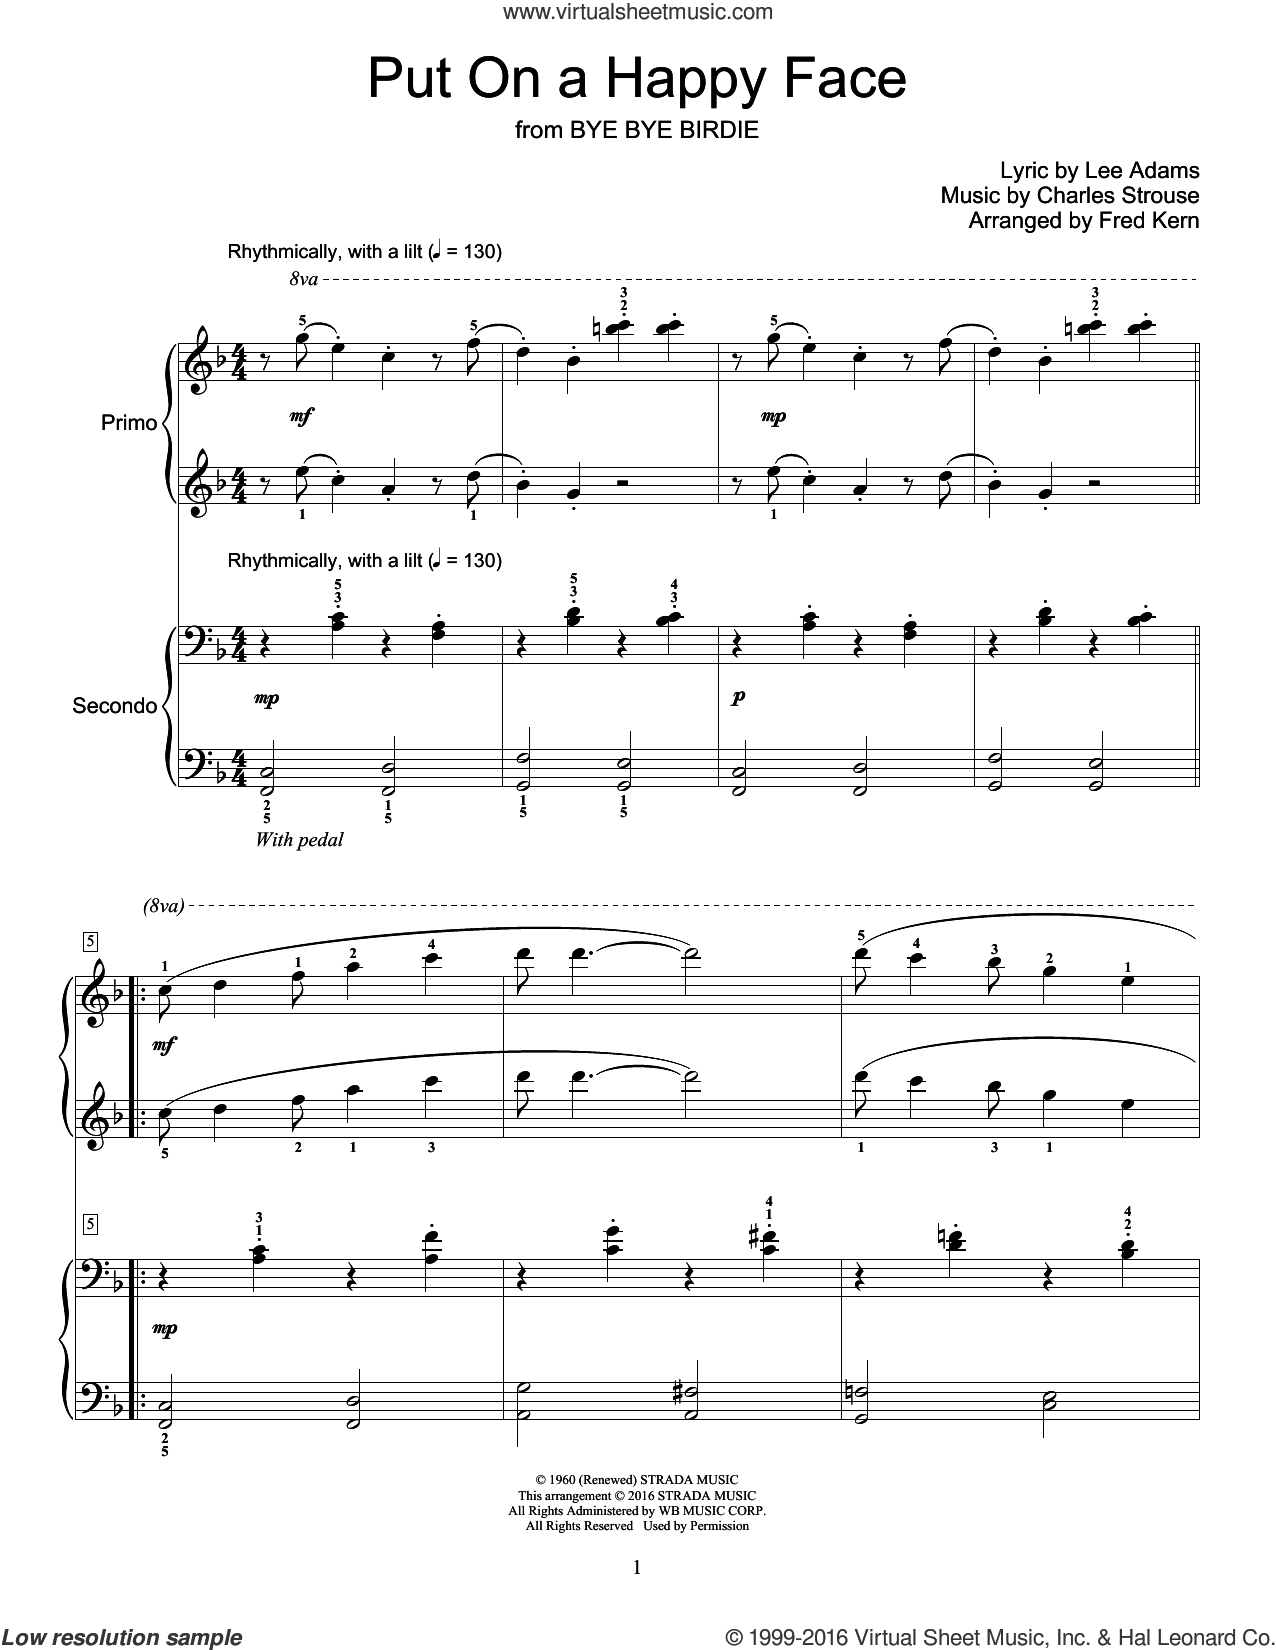 Put On A Happy Face sheet music for piano four hands (duets) by Lee Adams